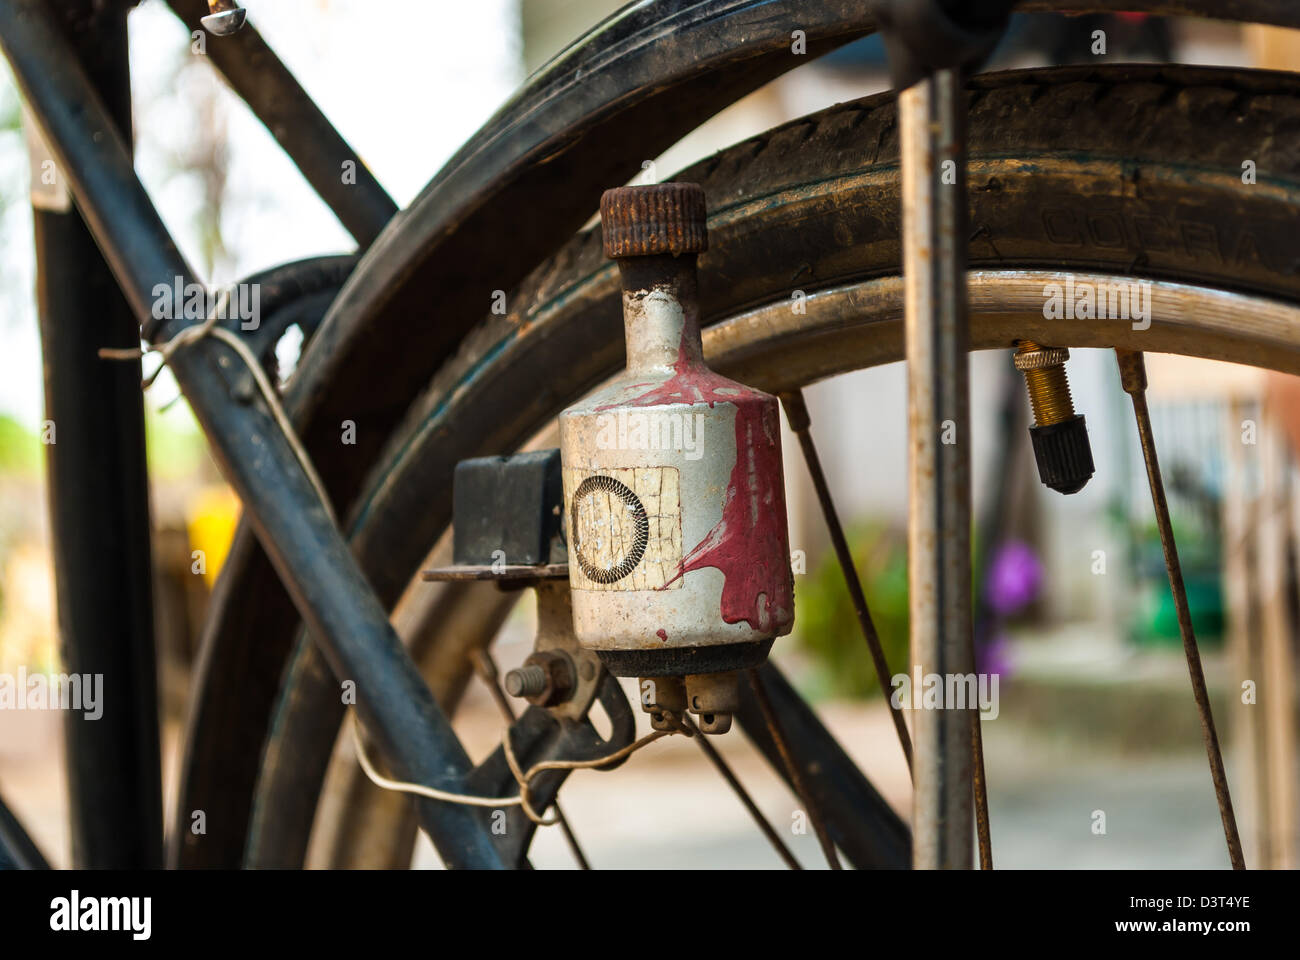 Electric Dynamo Stock Photos Images Alamy Simple Generator Design Generators And Dynamos On Antique Bicycle Image